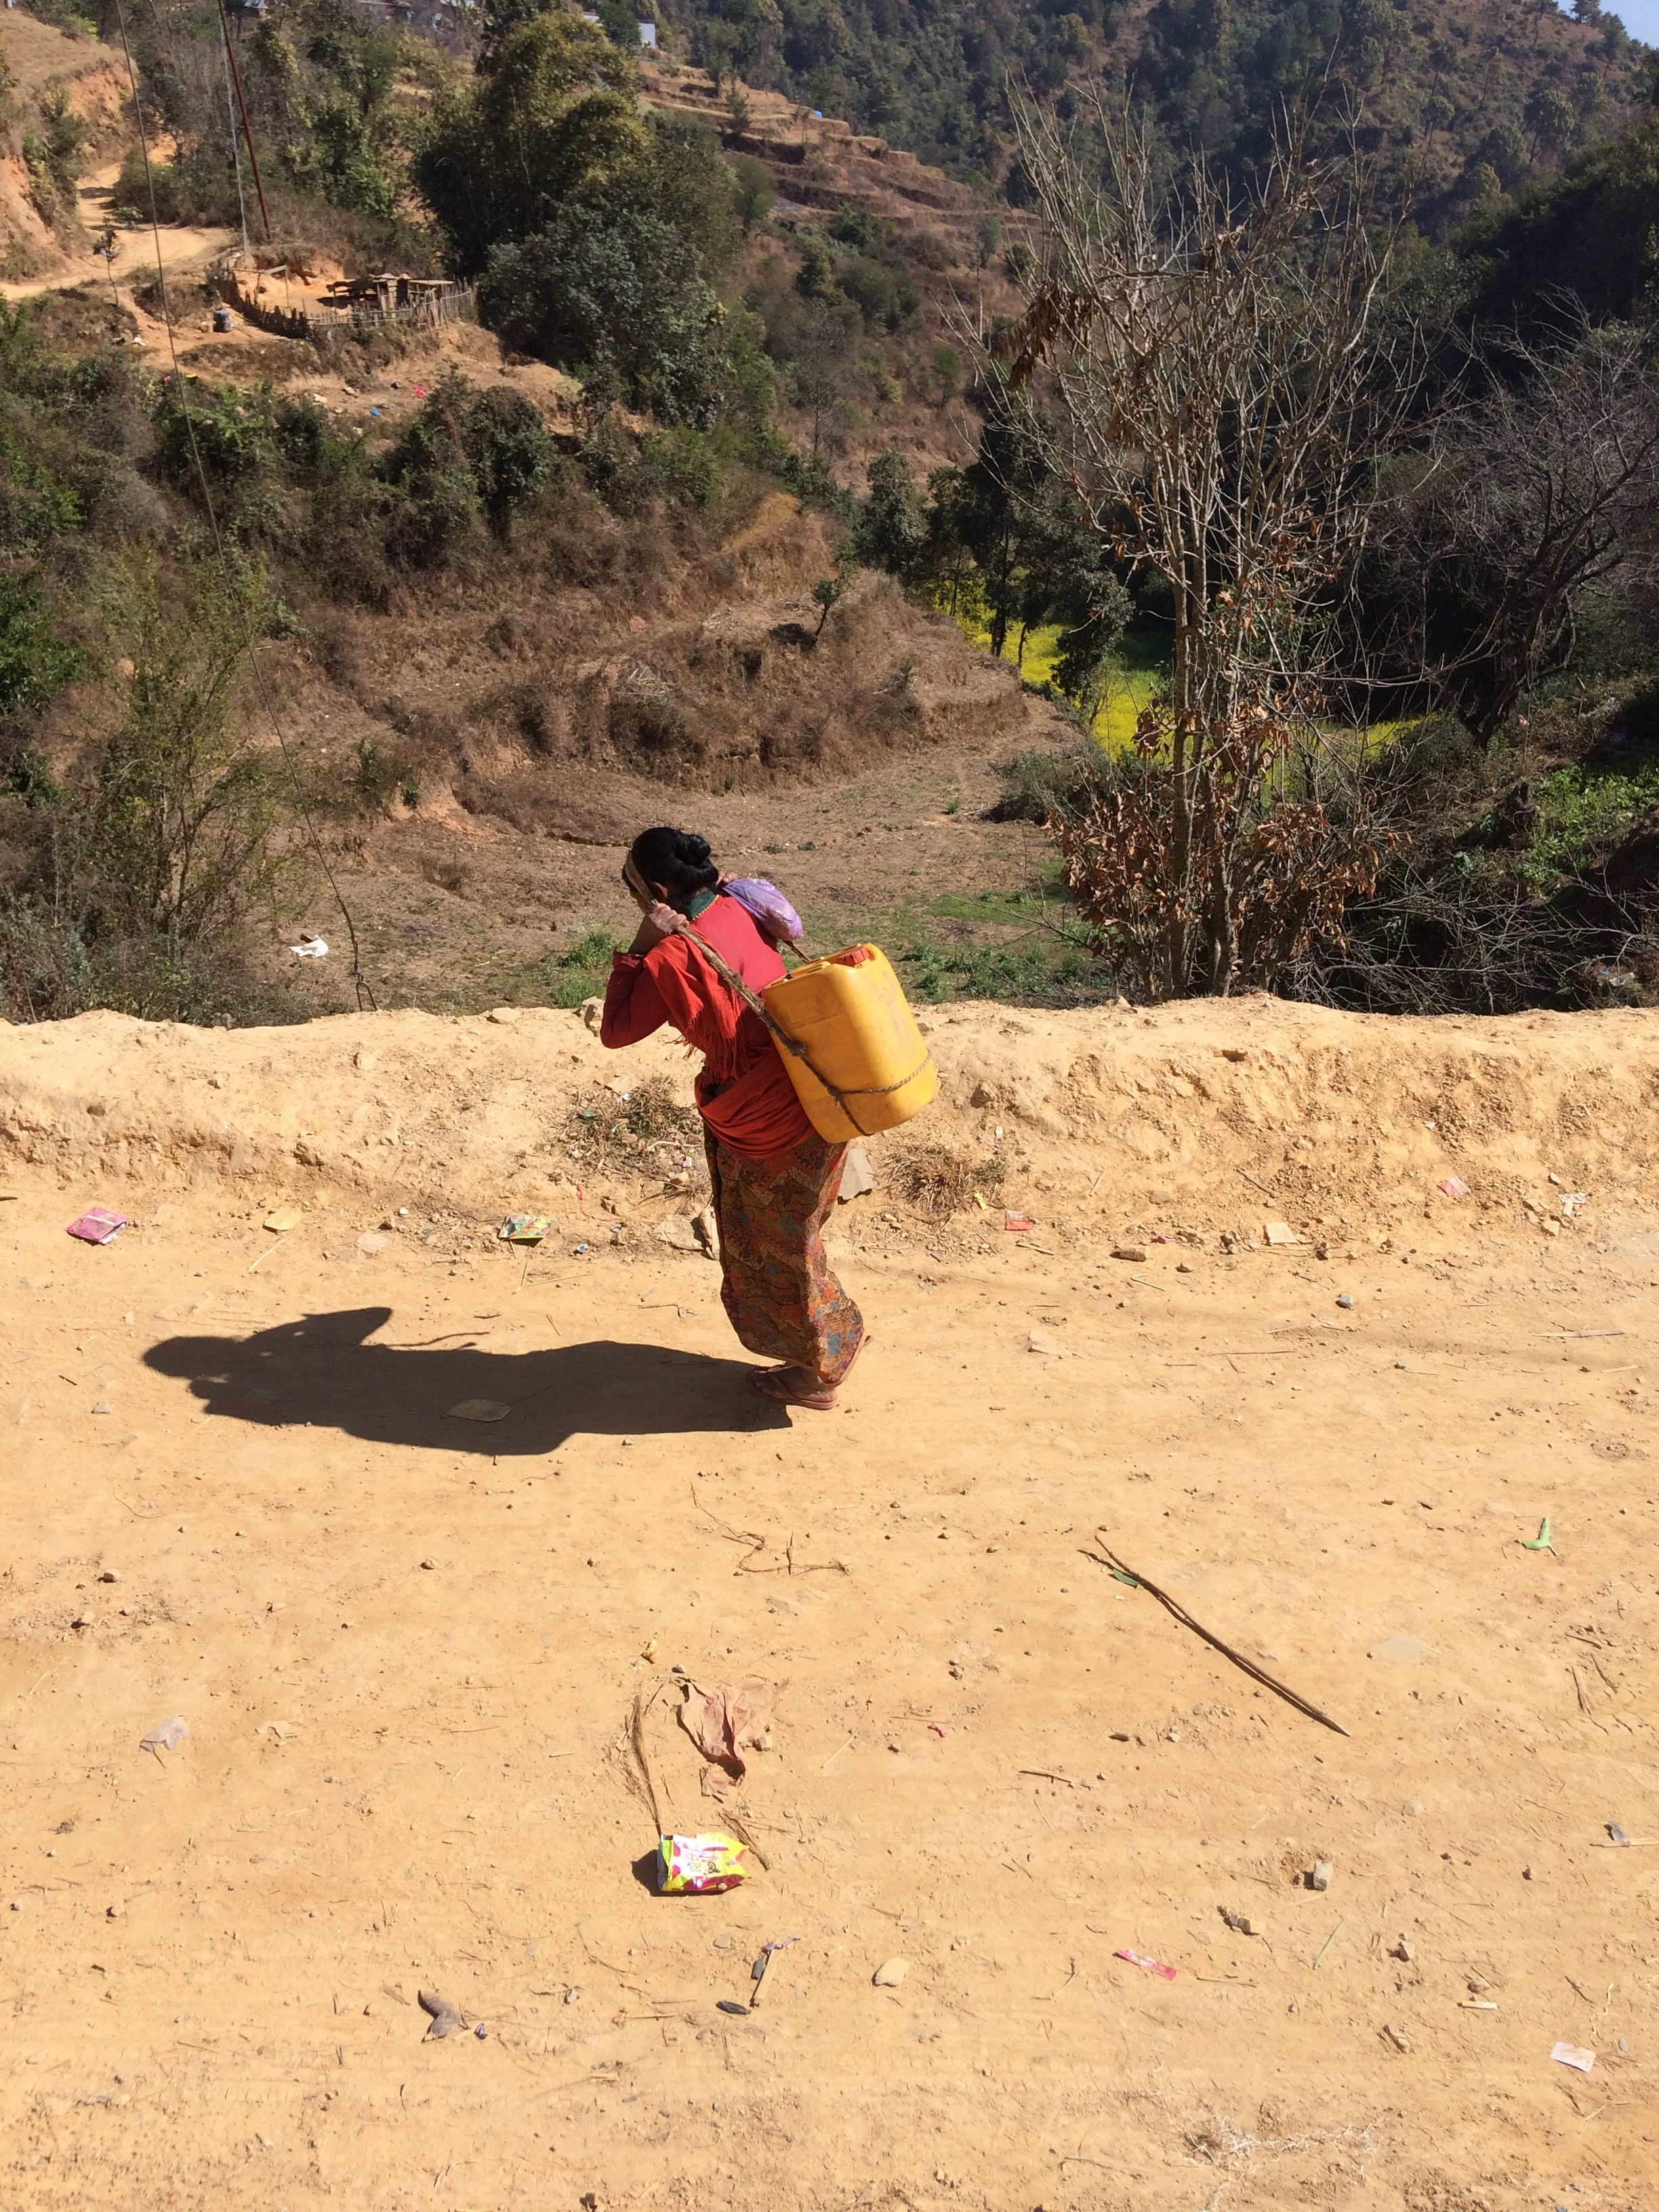 A woman carries dirty water from the bottom of the hill back to her home at the top